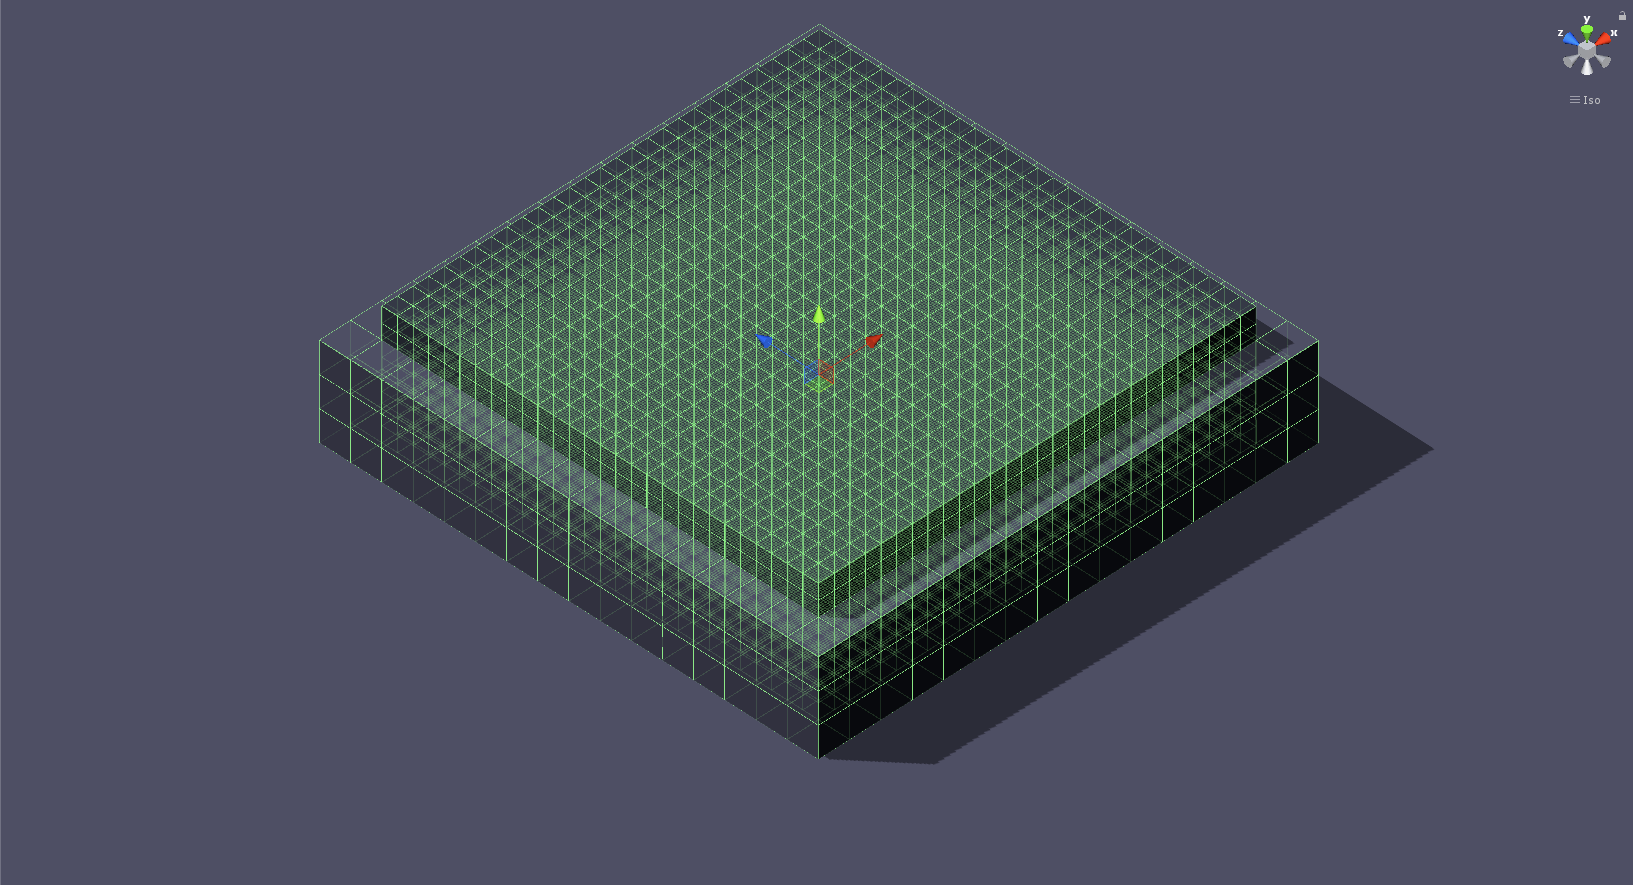 6452 cubes make up one of the large obstacles in the green level.